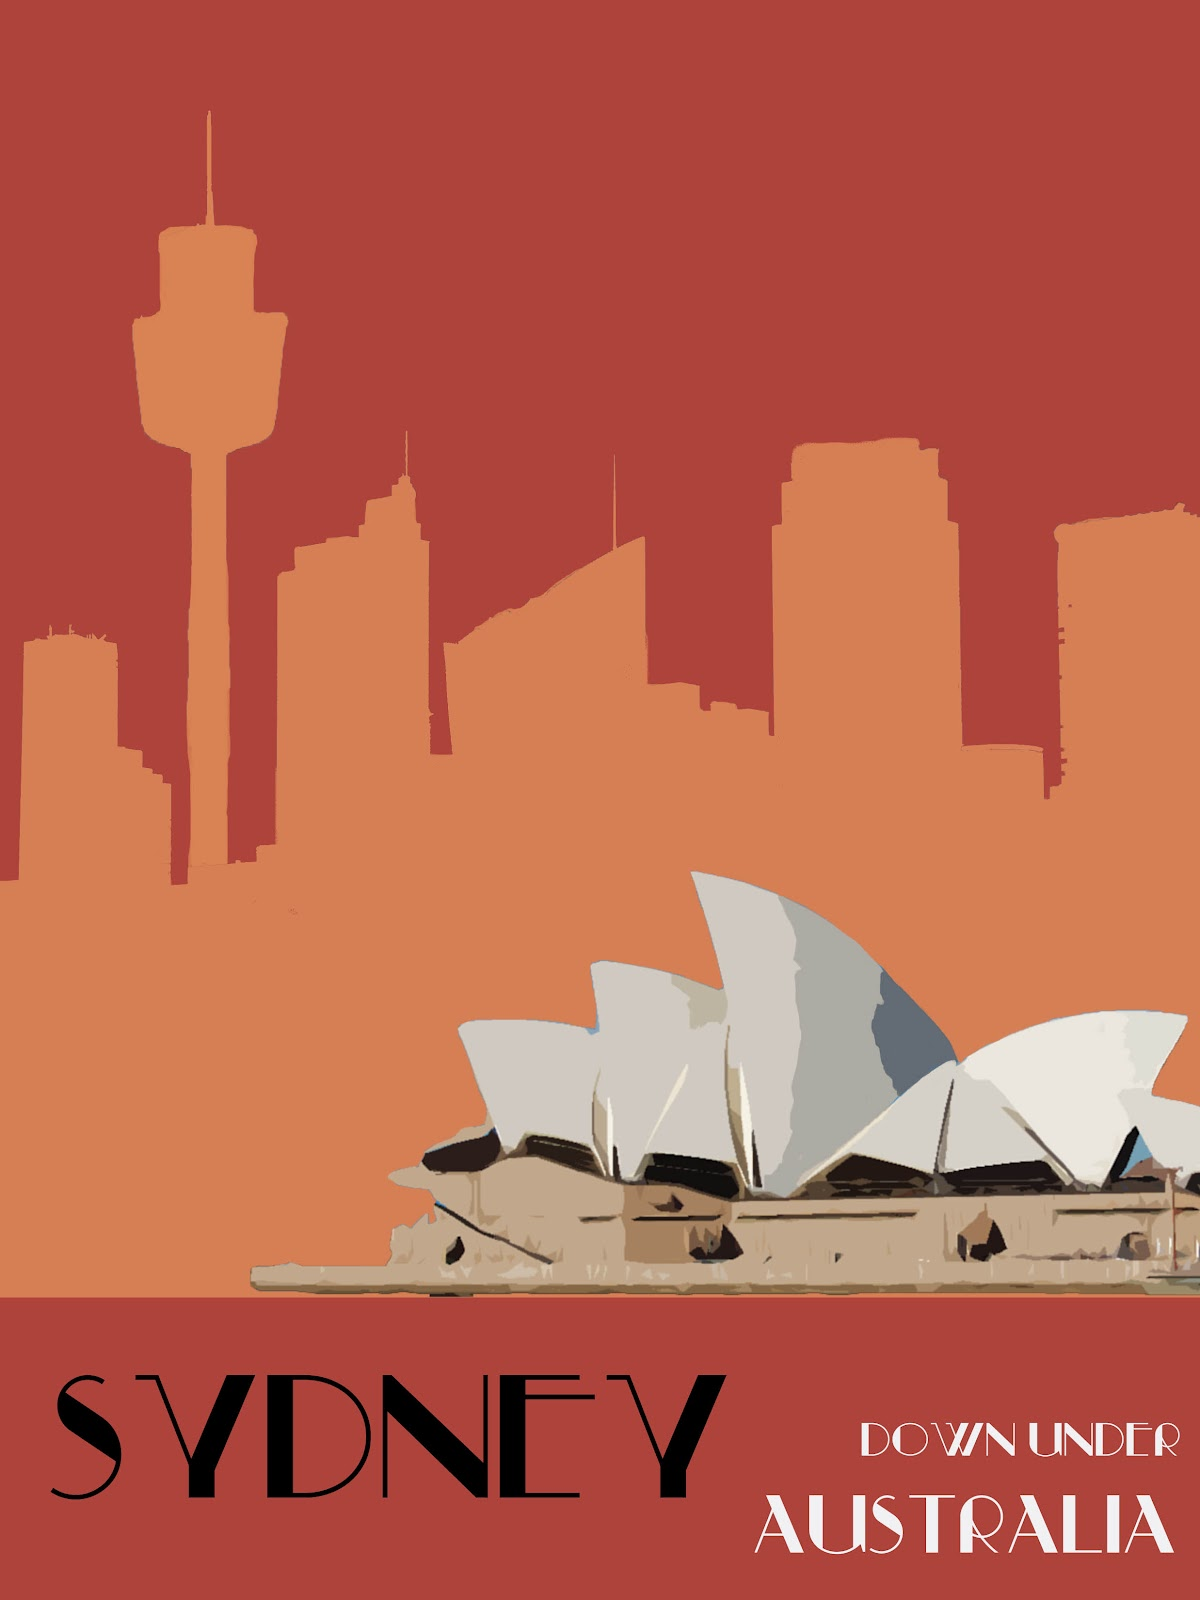 Famous Art Deco Travel Posters | www.imgkid.com - The ...